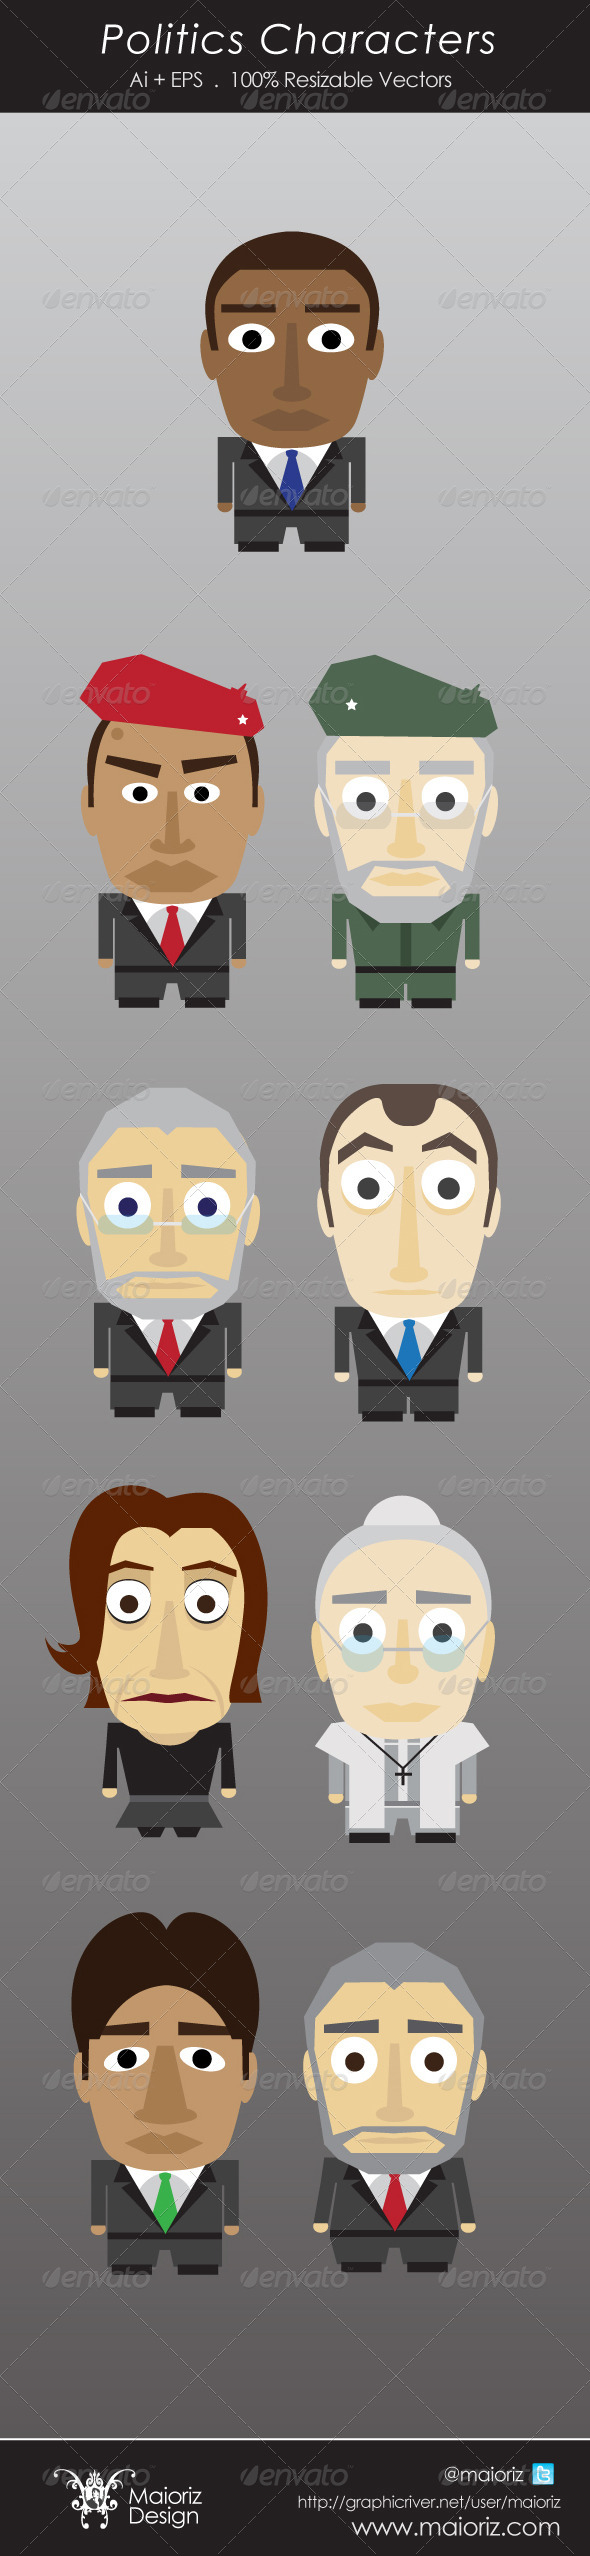 Politics Vector Characters - People Characters